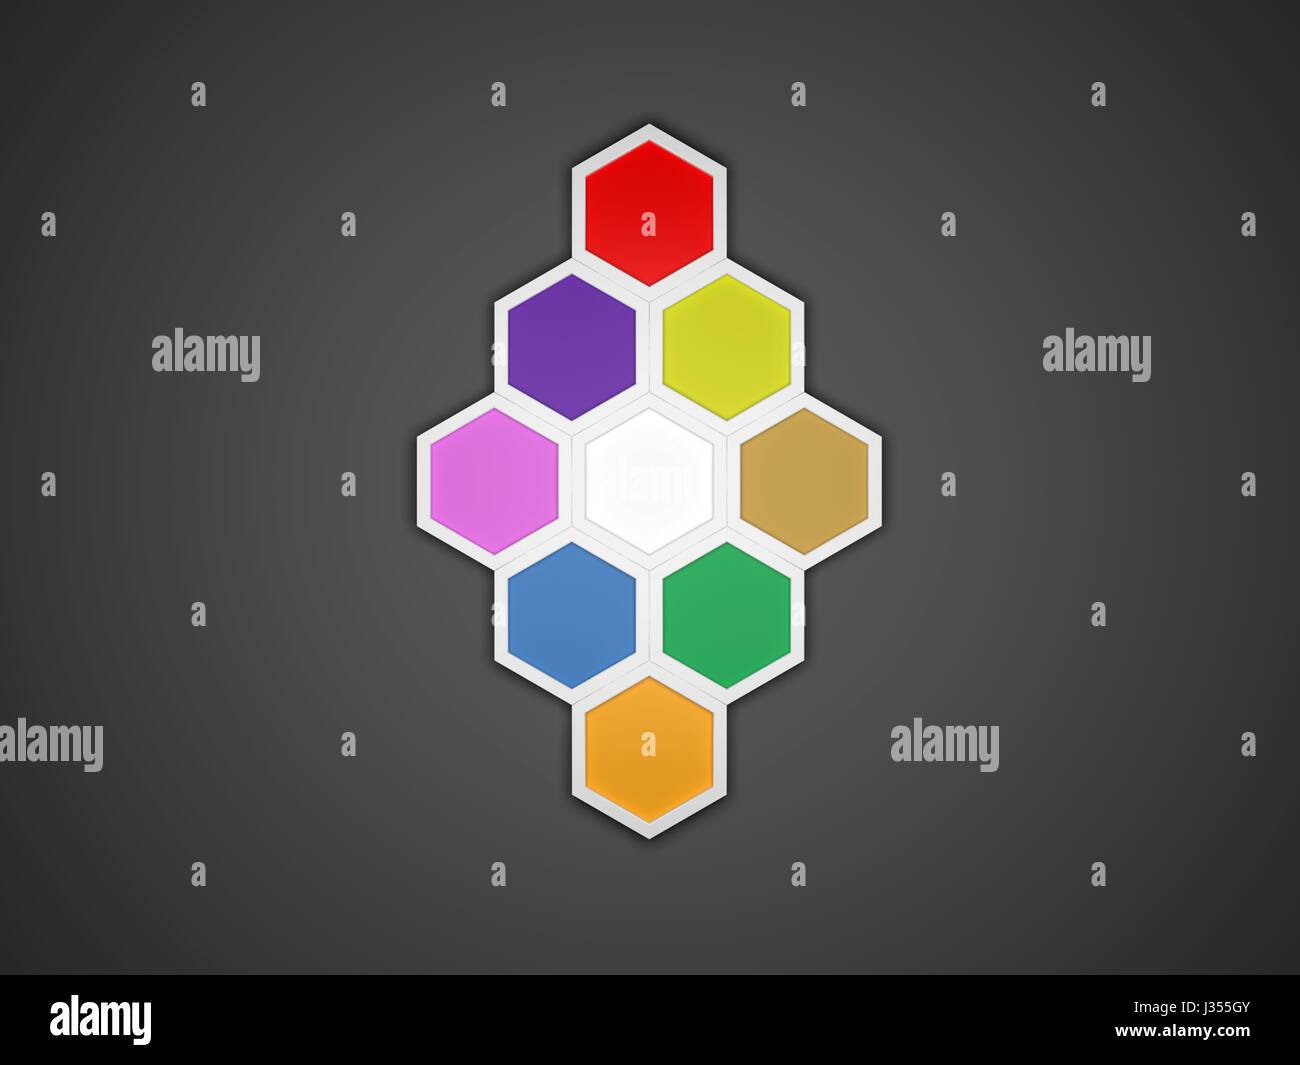 3d octagon template layout for business stock photo 139641067 alamy